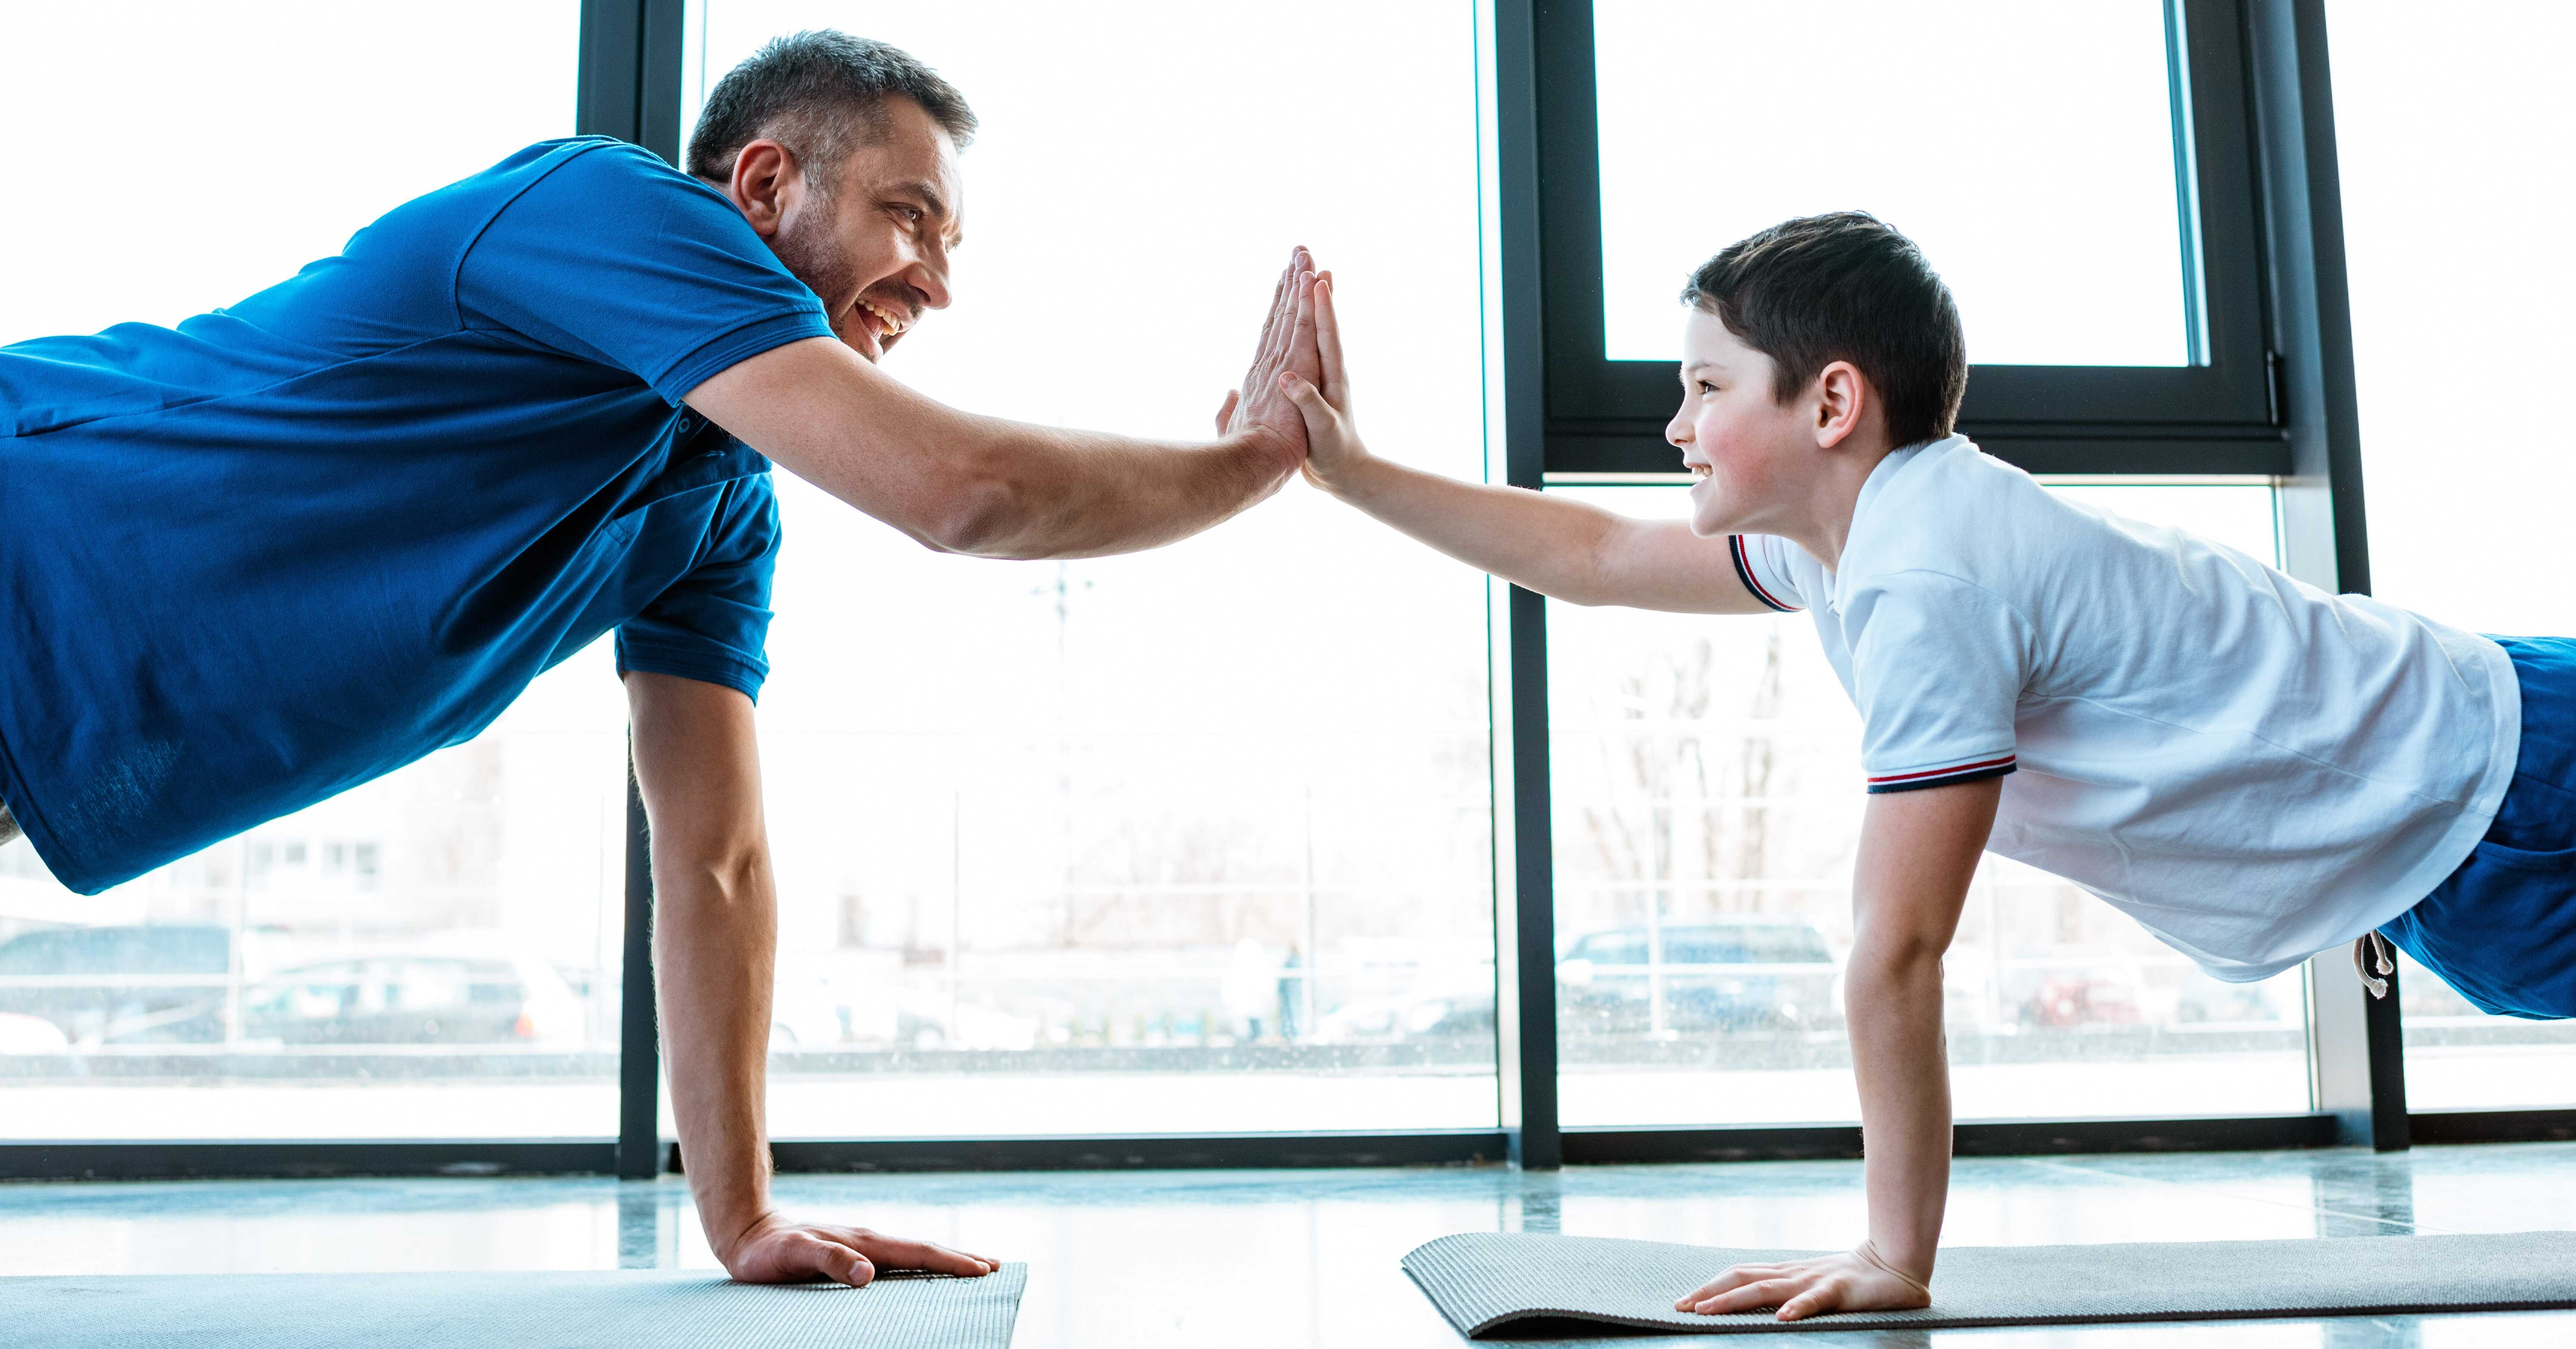 get involved with your kids during exercise to make it fun